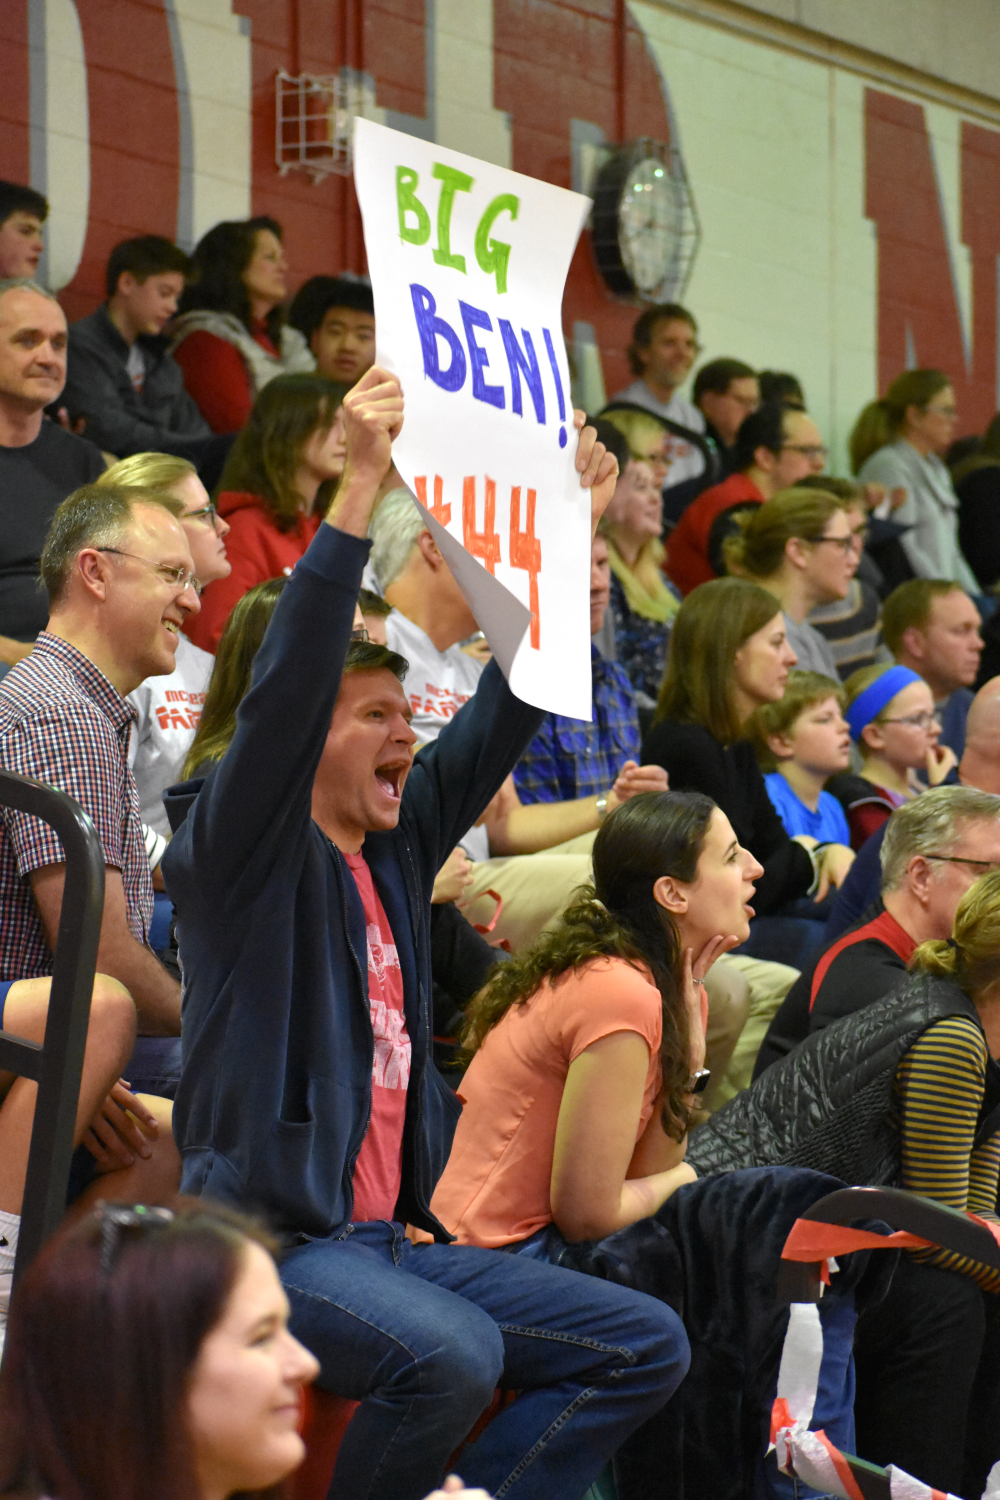 Spectators+brought+signs+to+encourage+players+on+the+team%2C+such+as+this+one+supporting+Baker.+%28photo+by+Maren+Kranking%29